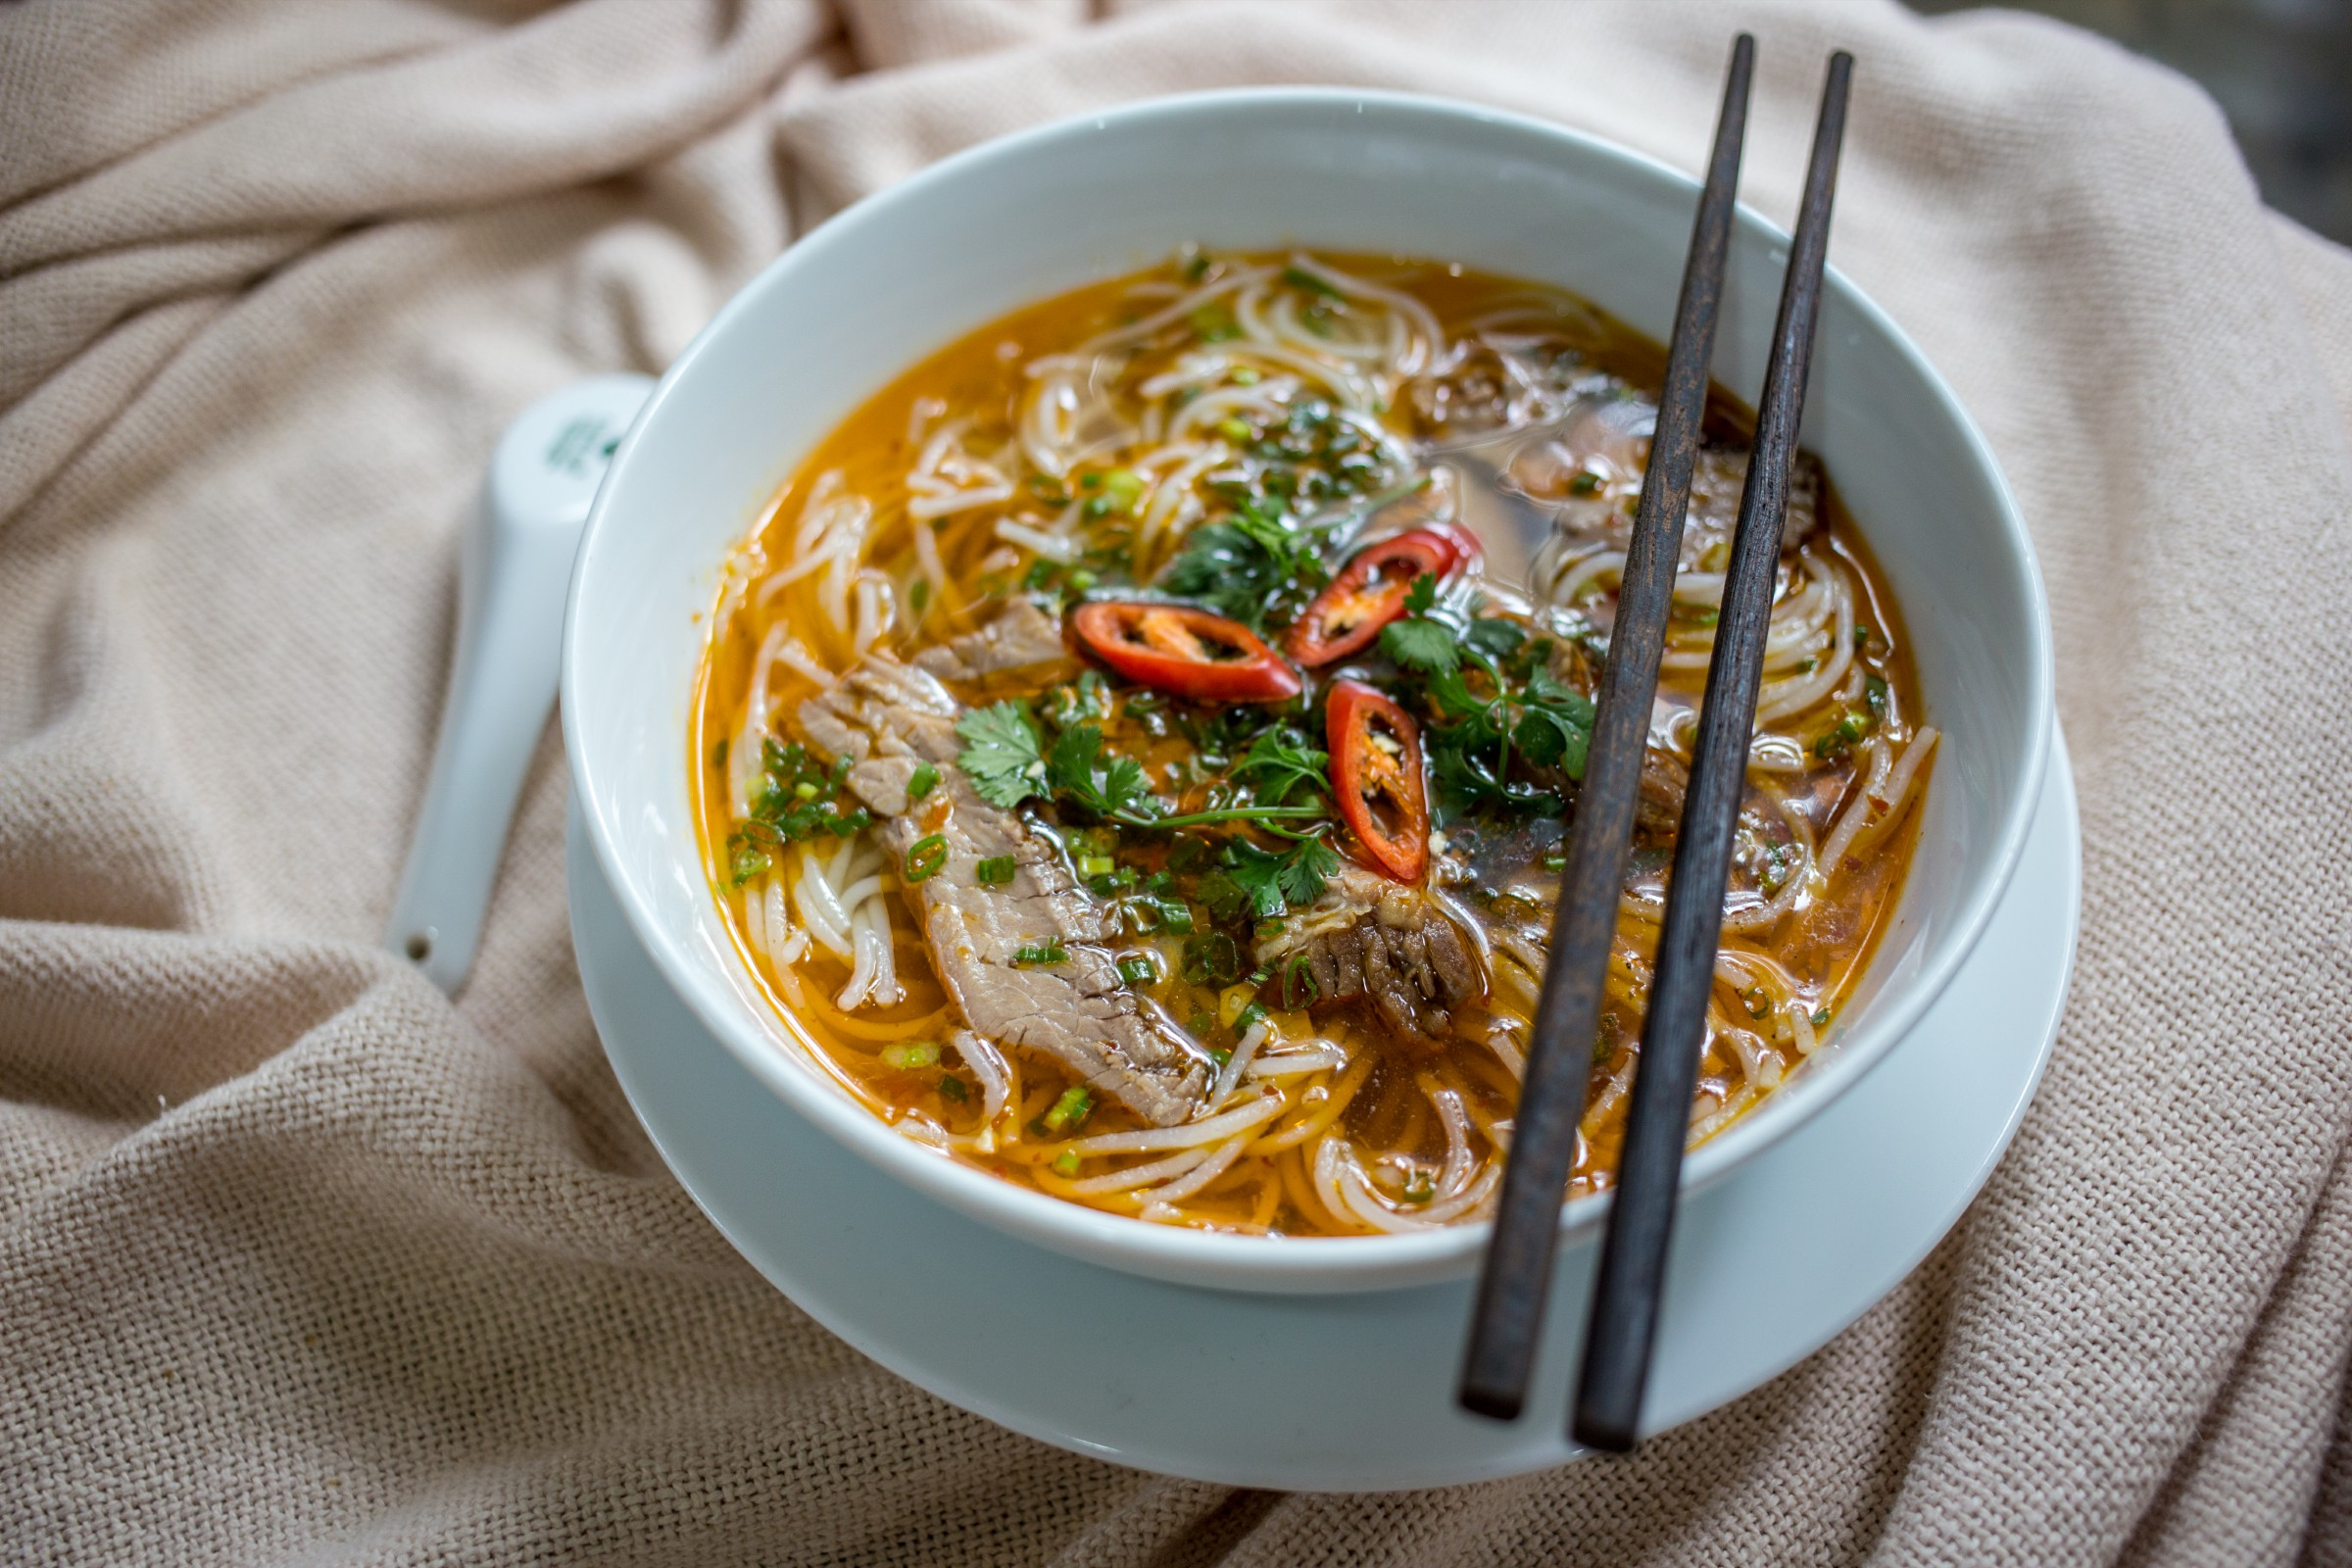 The Top 9 Vietnamese Foods You Should Really Be Trying